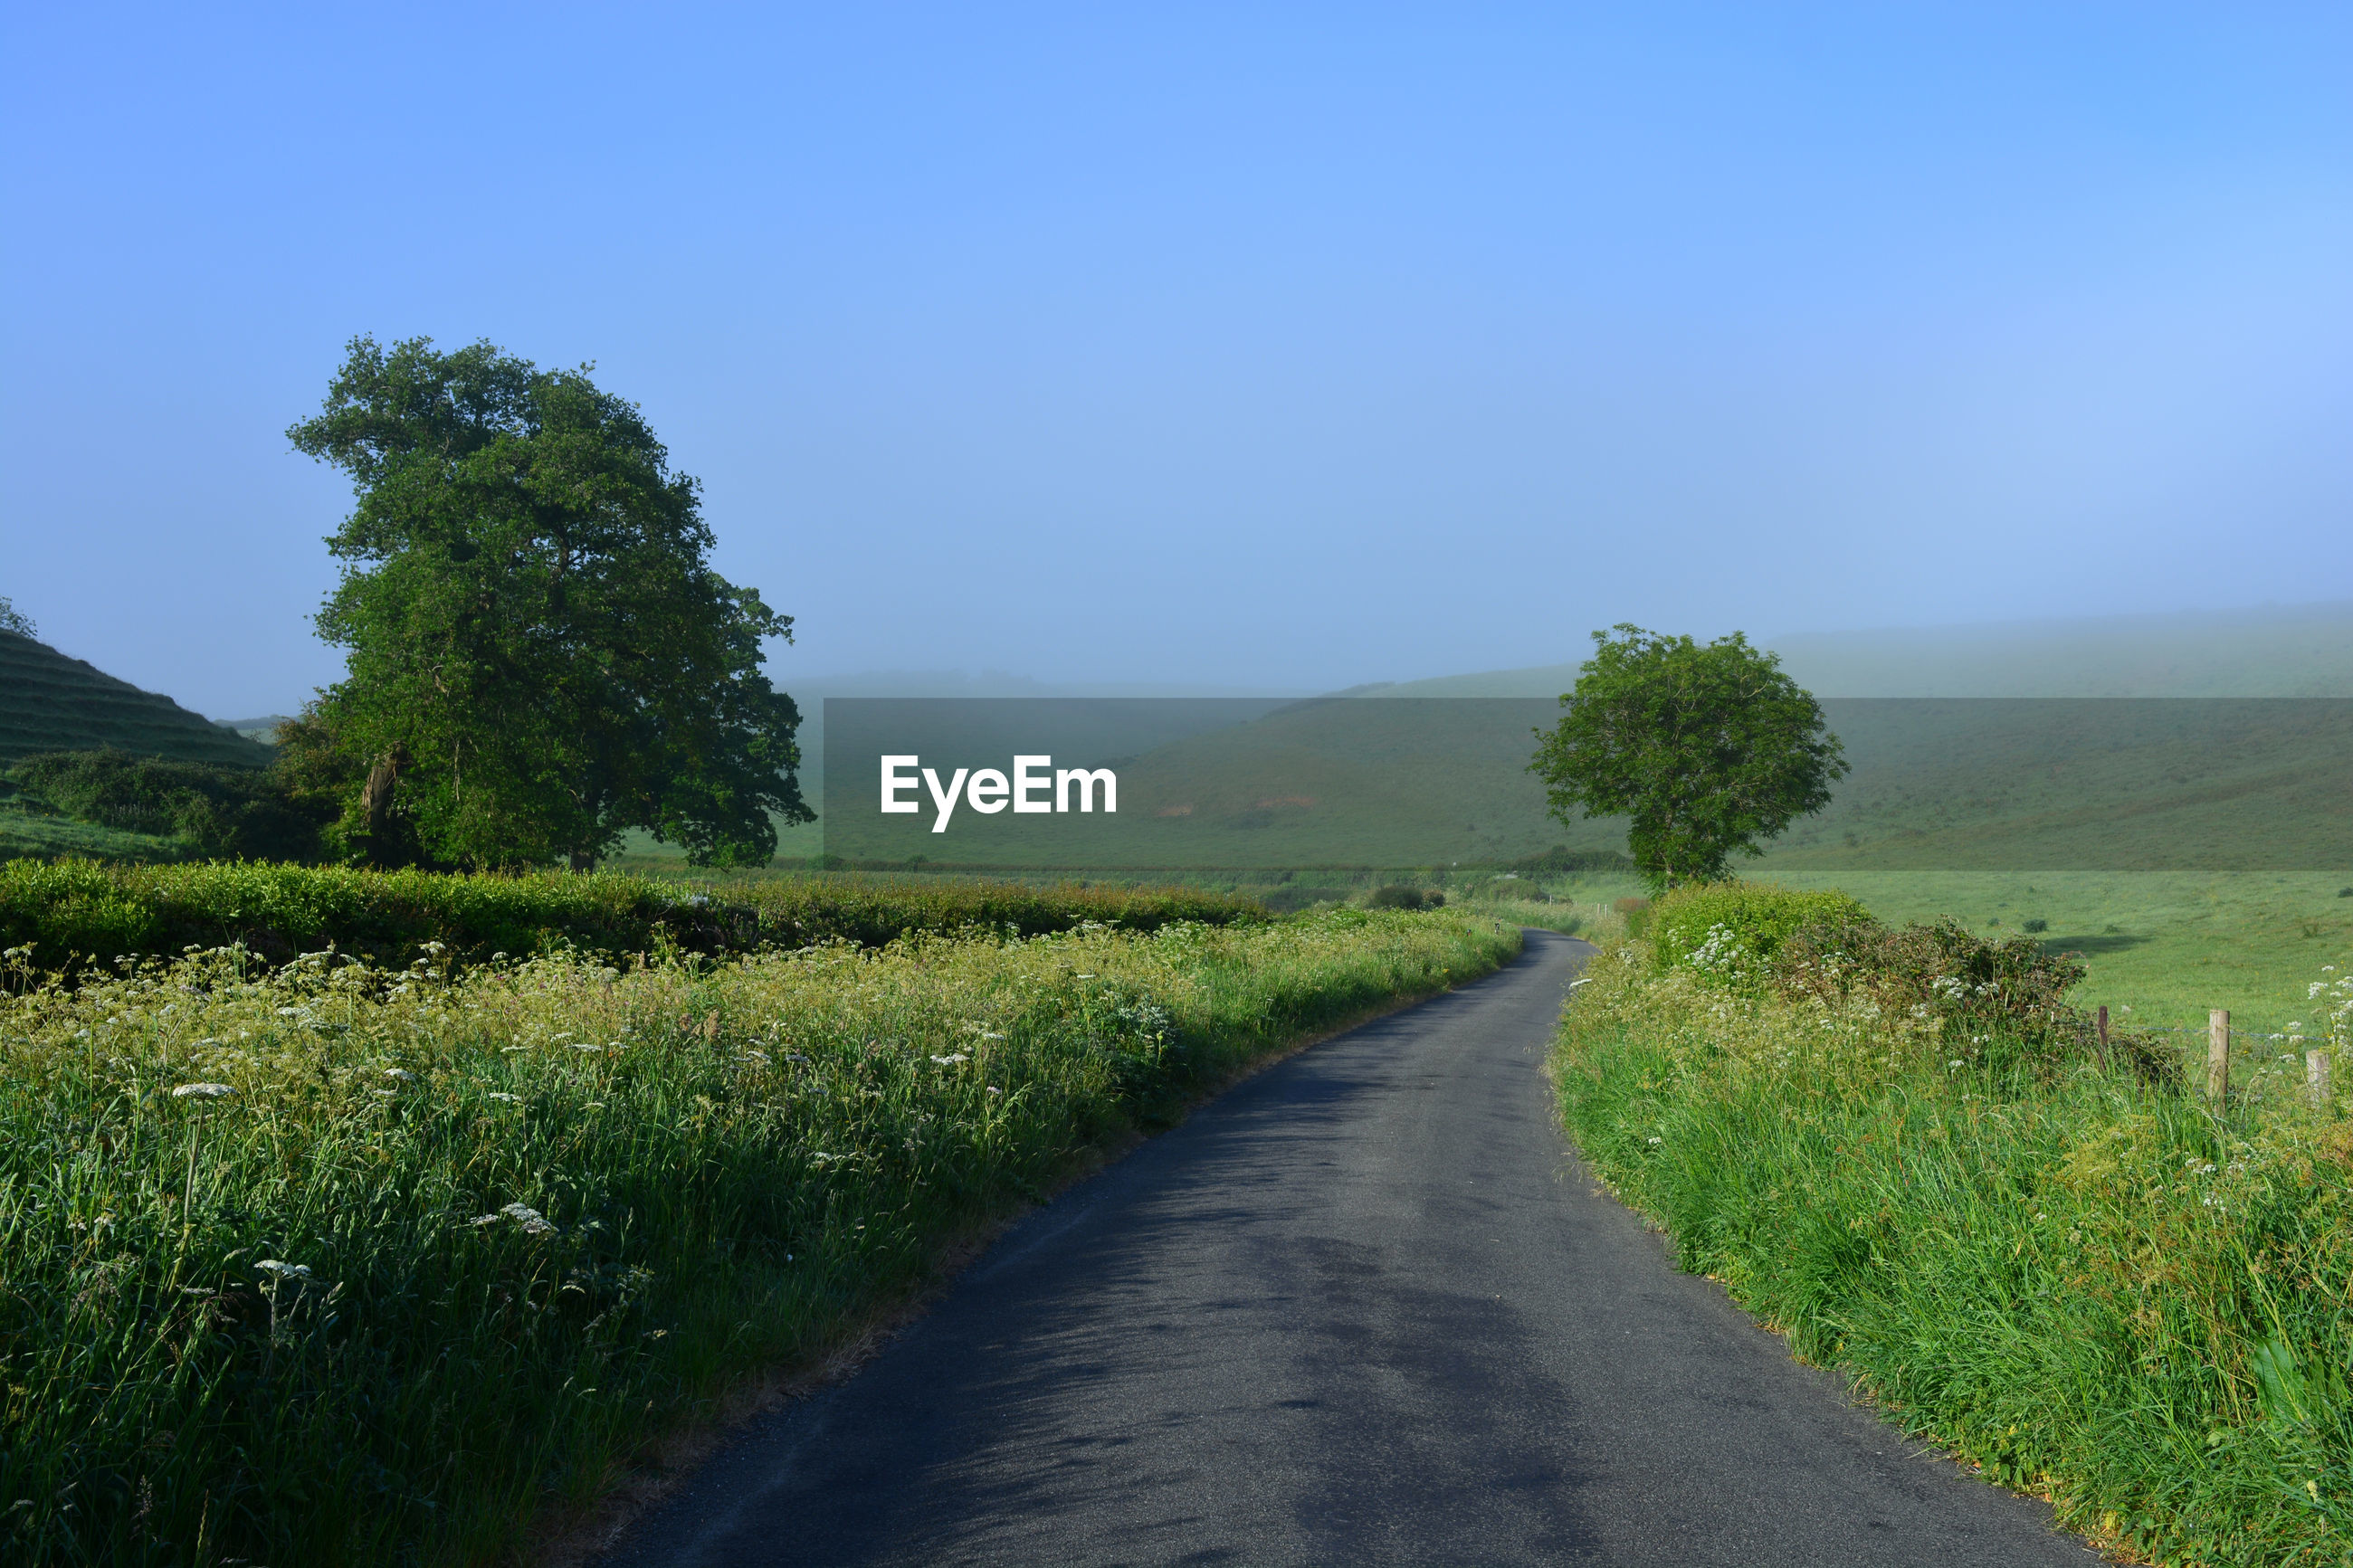 Misty country lane in late spring, between oborne and poyntington, sherborne, dorset, england